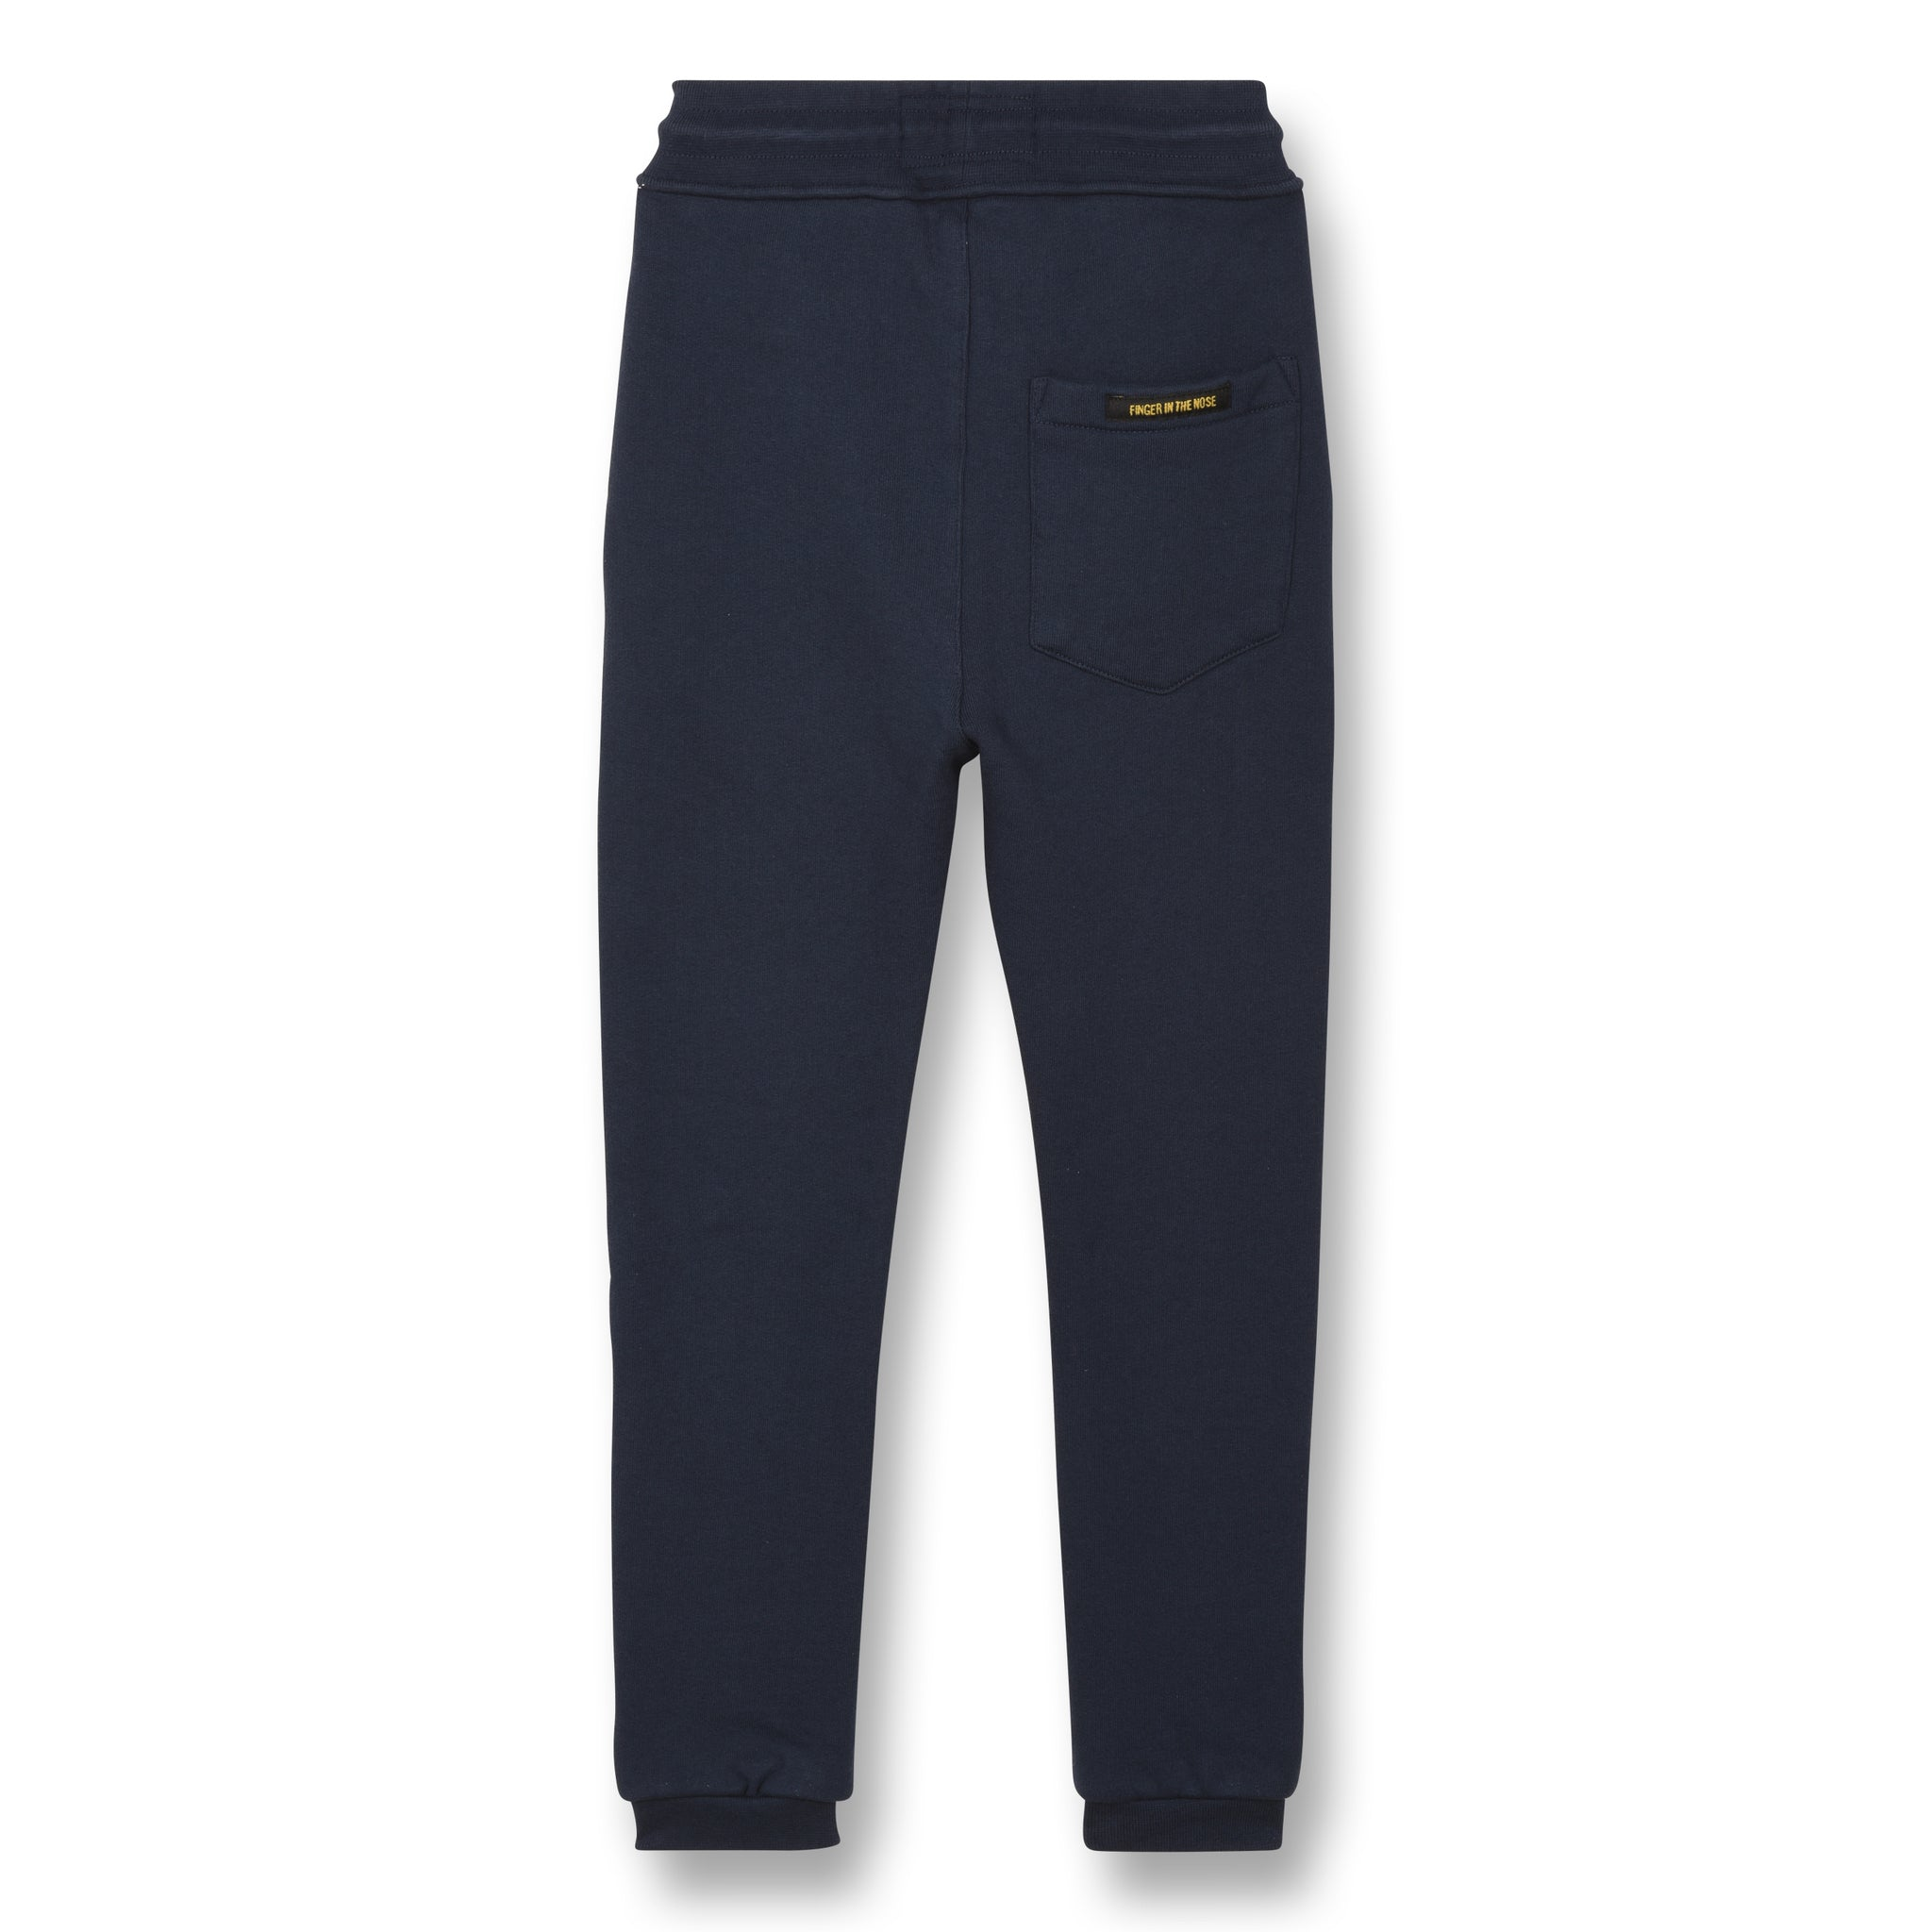 SPRINT Sailor Blue - Jogging Pants 2